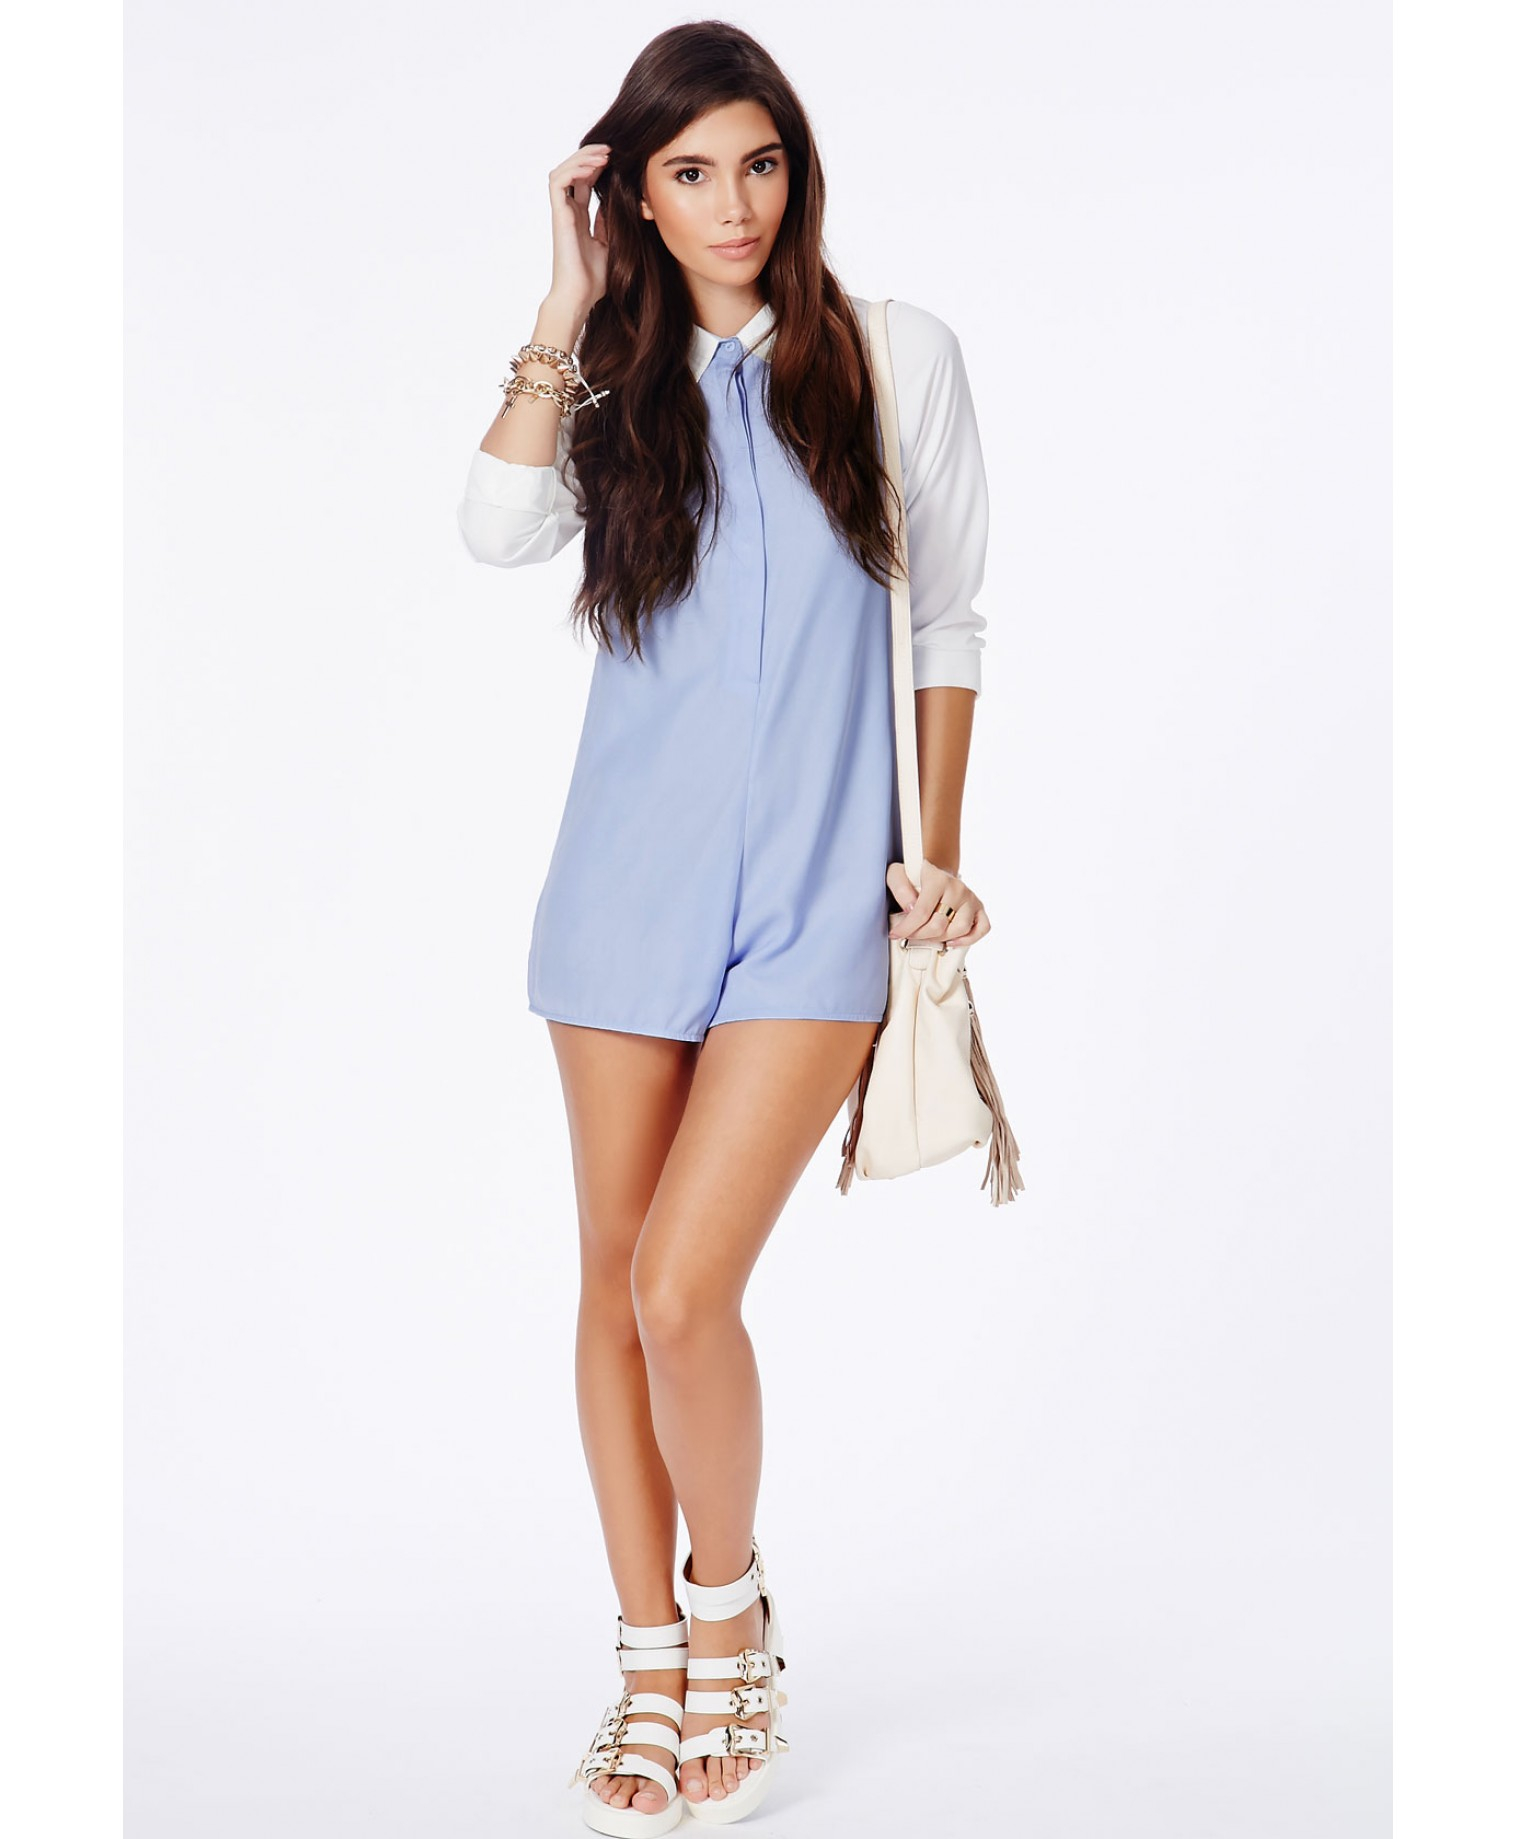 521f4270ce9 Lyst - Missguided Beatrina Contrast Tailored Playsuit in Powder Blue ...